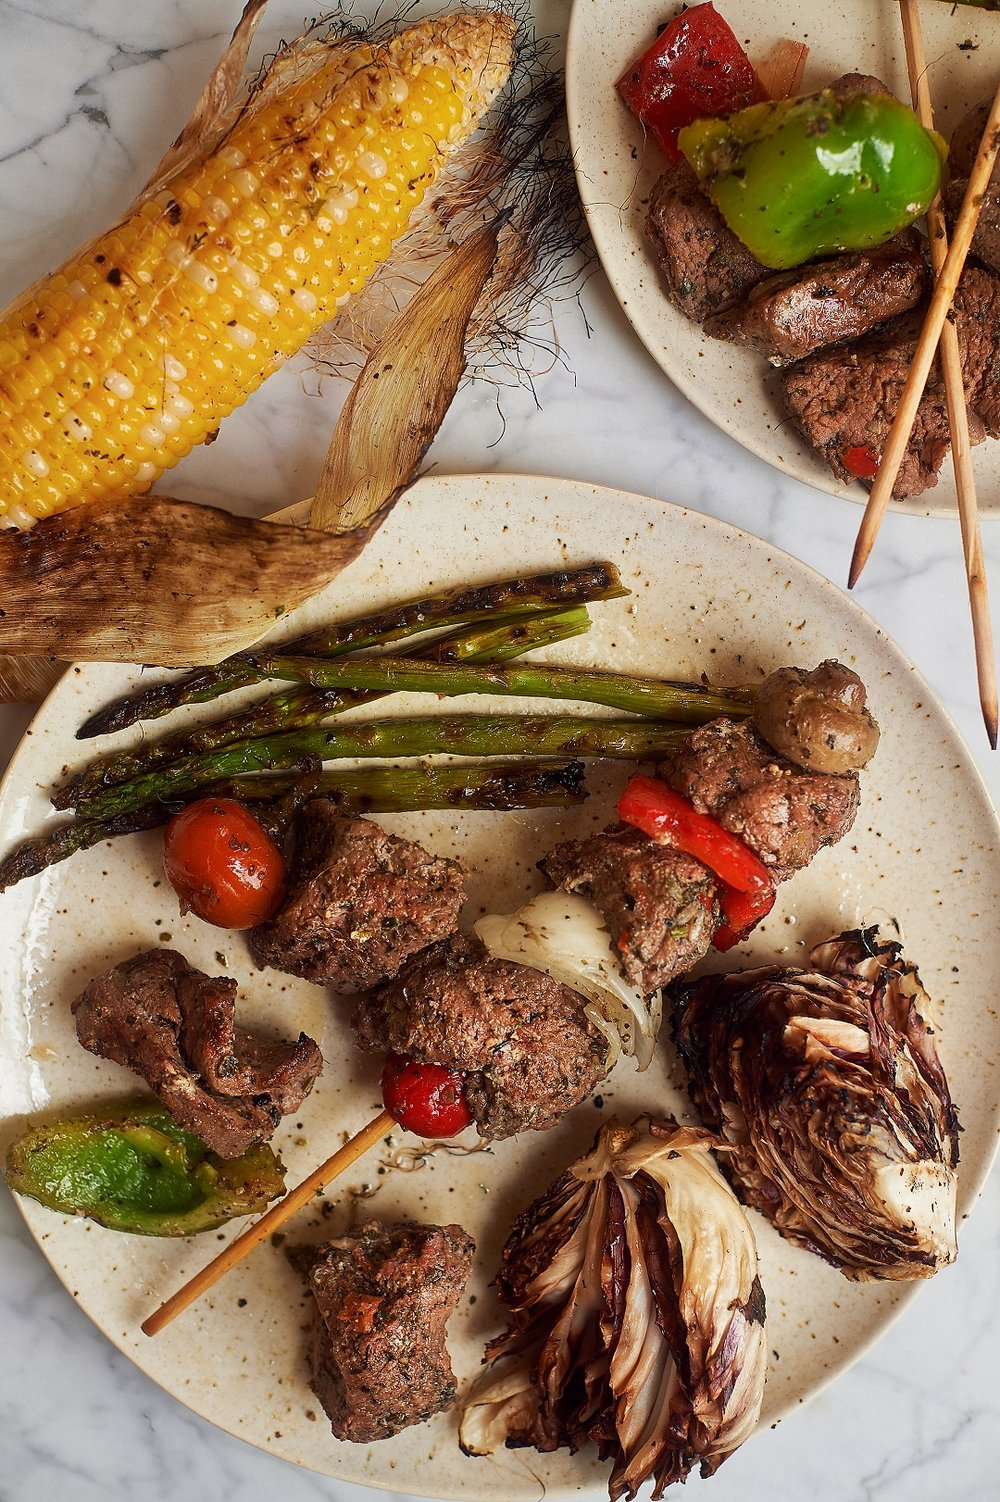 Steak Kebabs: you'll be the king of the grill with these bad boys!  Nebraska-raised, beef lends to rich, succulent pieces of our top sirloin steak, bell peppers, mild -cherry peppers, Vidalia onions, and marinated in our secret Italian family recipe marinade.  Fire up the grill and enjoy these with an earthy, spicy Pinot Noir.